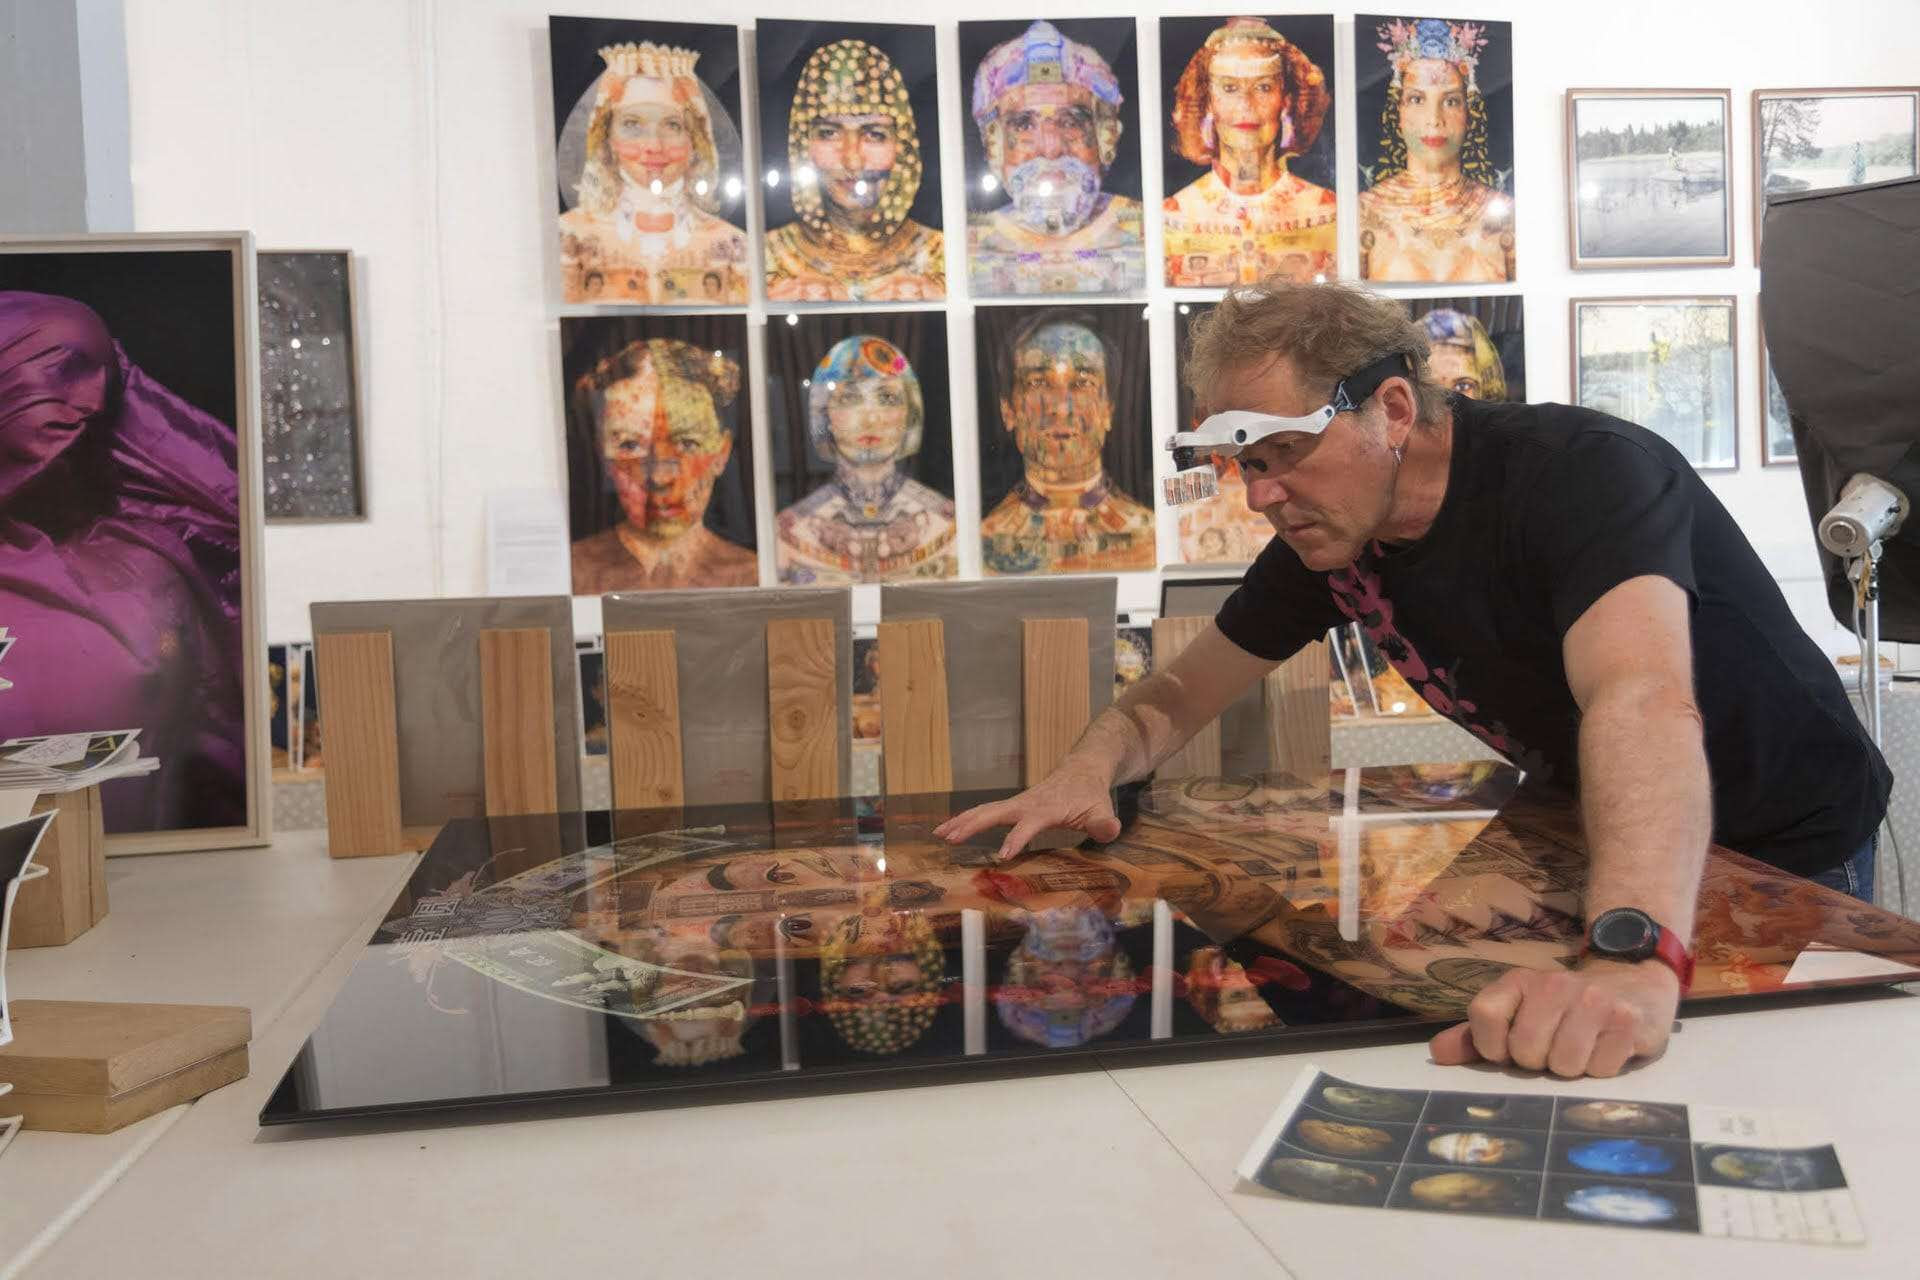 Artist Philippe Assalit in his workshop with some of his creations on the wall behind him.